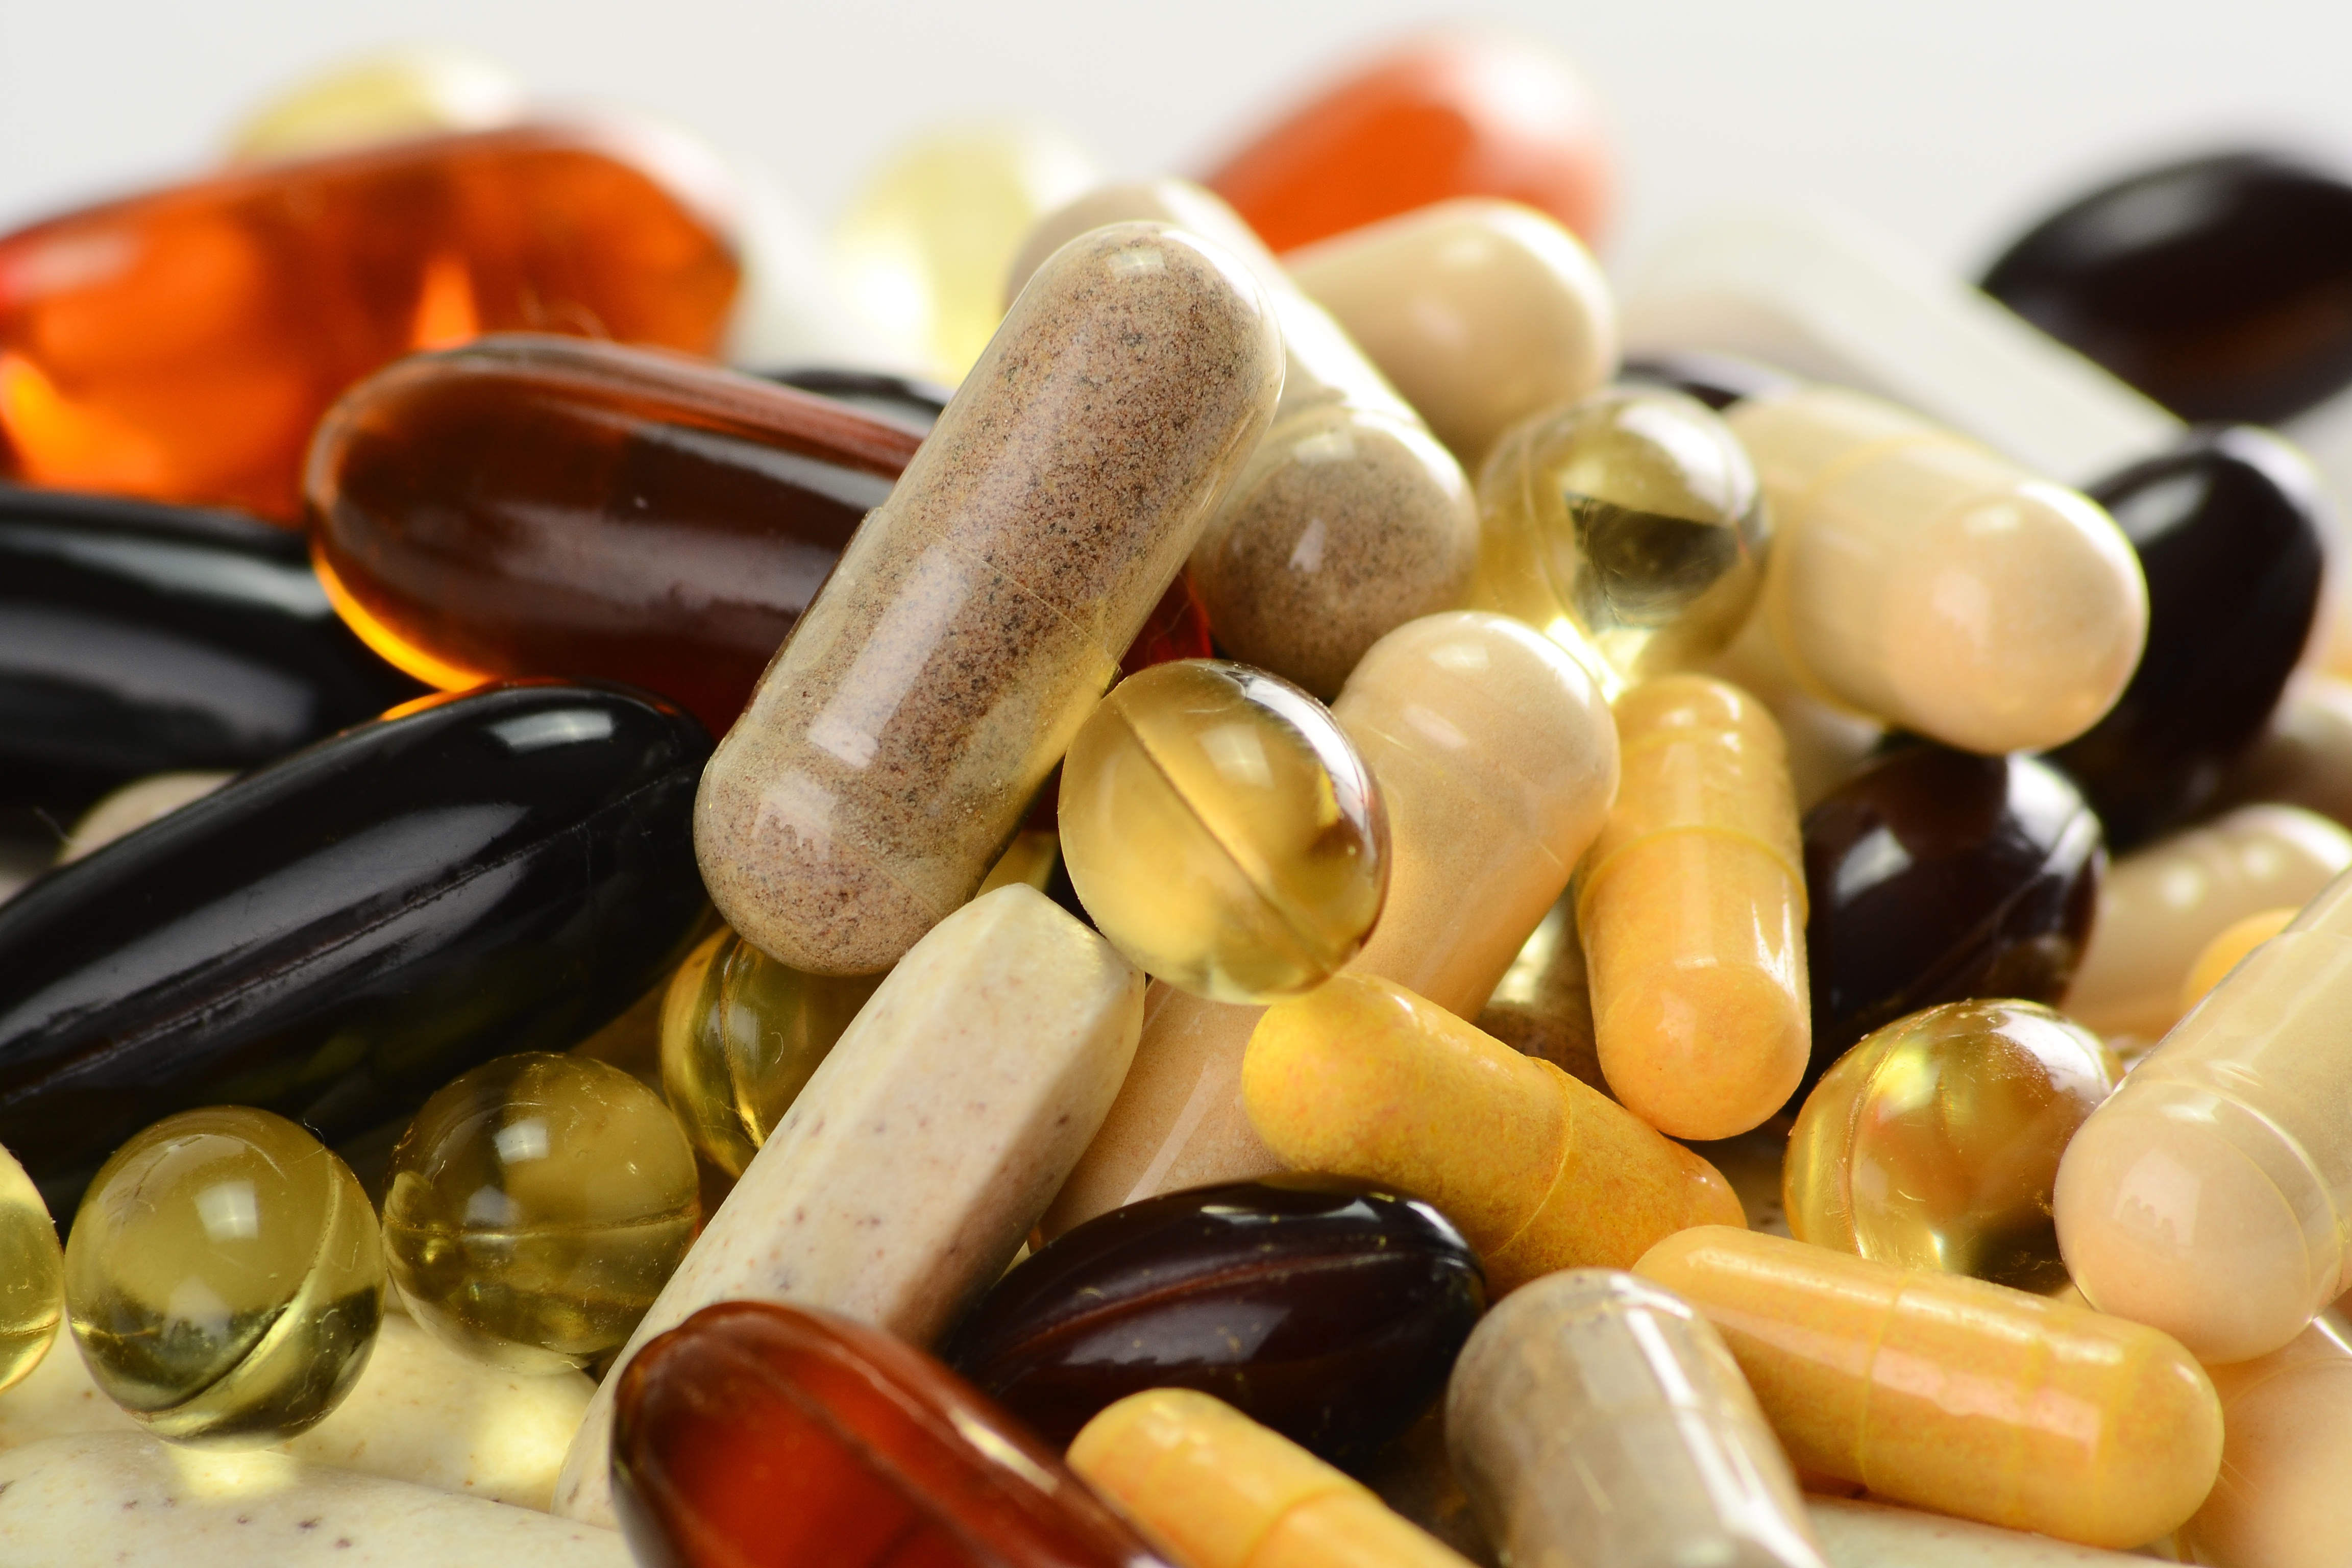 Multivitamin trial suggests some benefits for mood and wellbeing